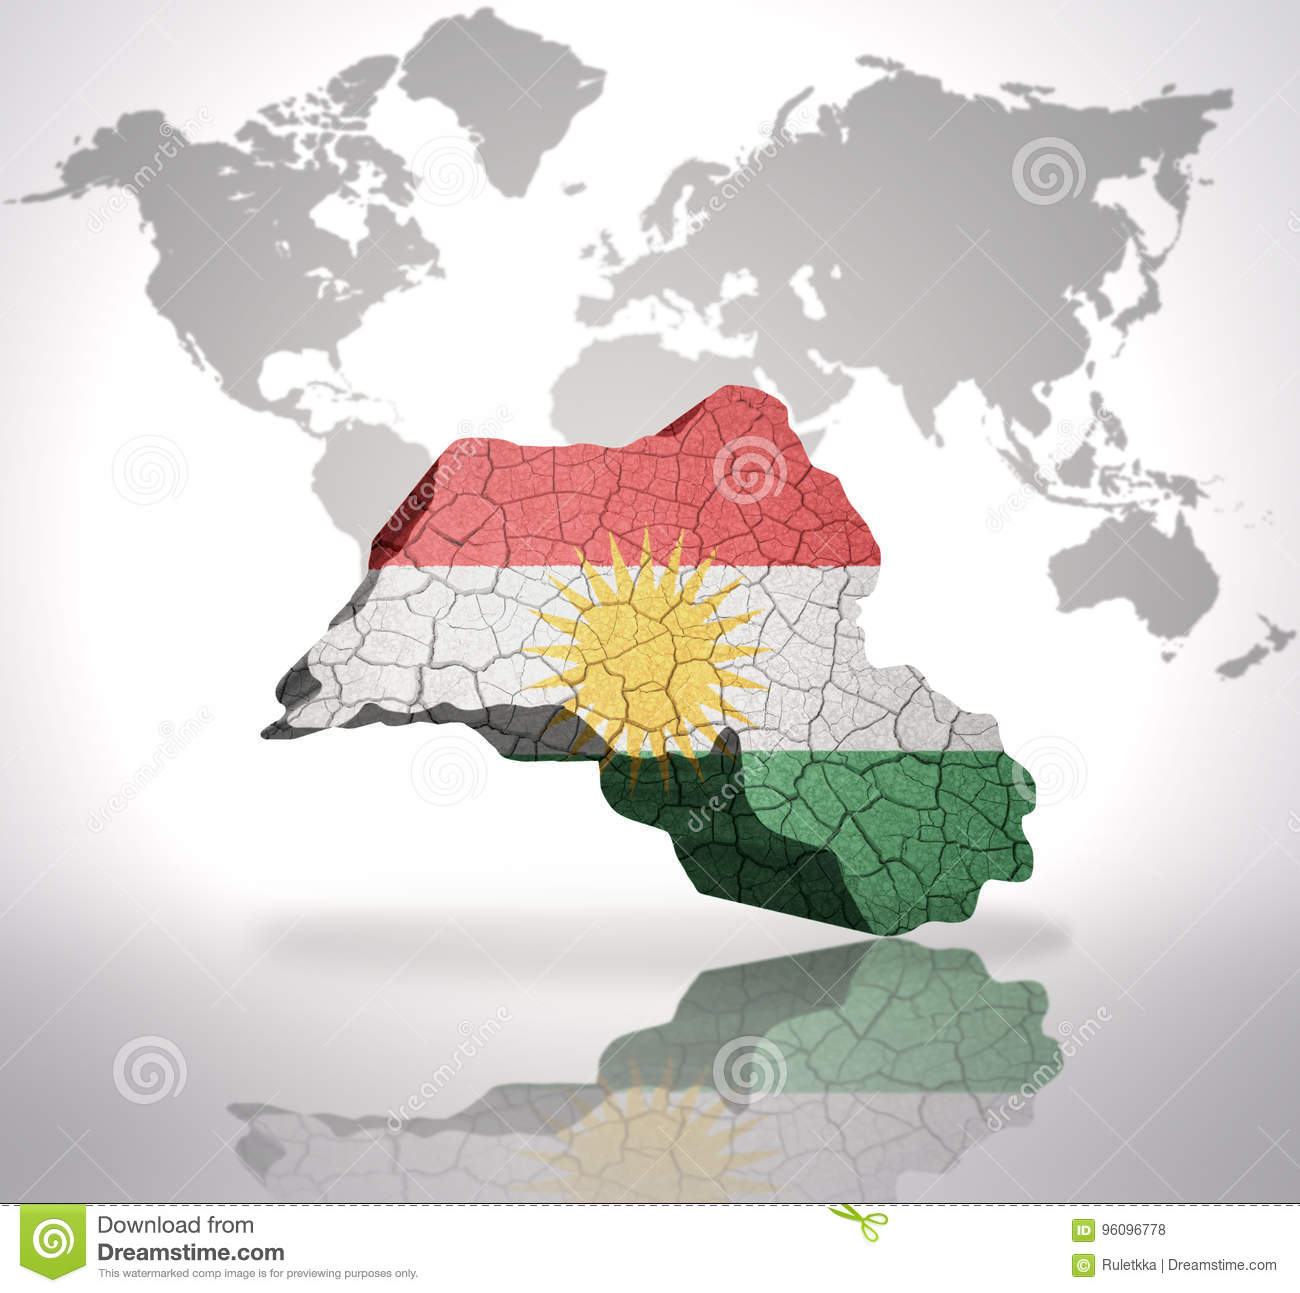 Map of kurdistan on a world map background stock illustration map of kurdistan on a world map background gumiabroncs Gallery